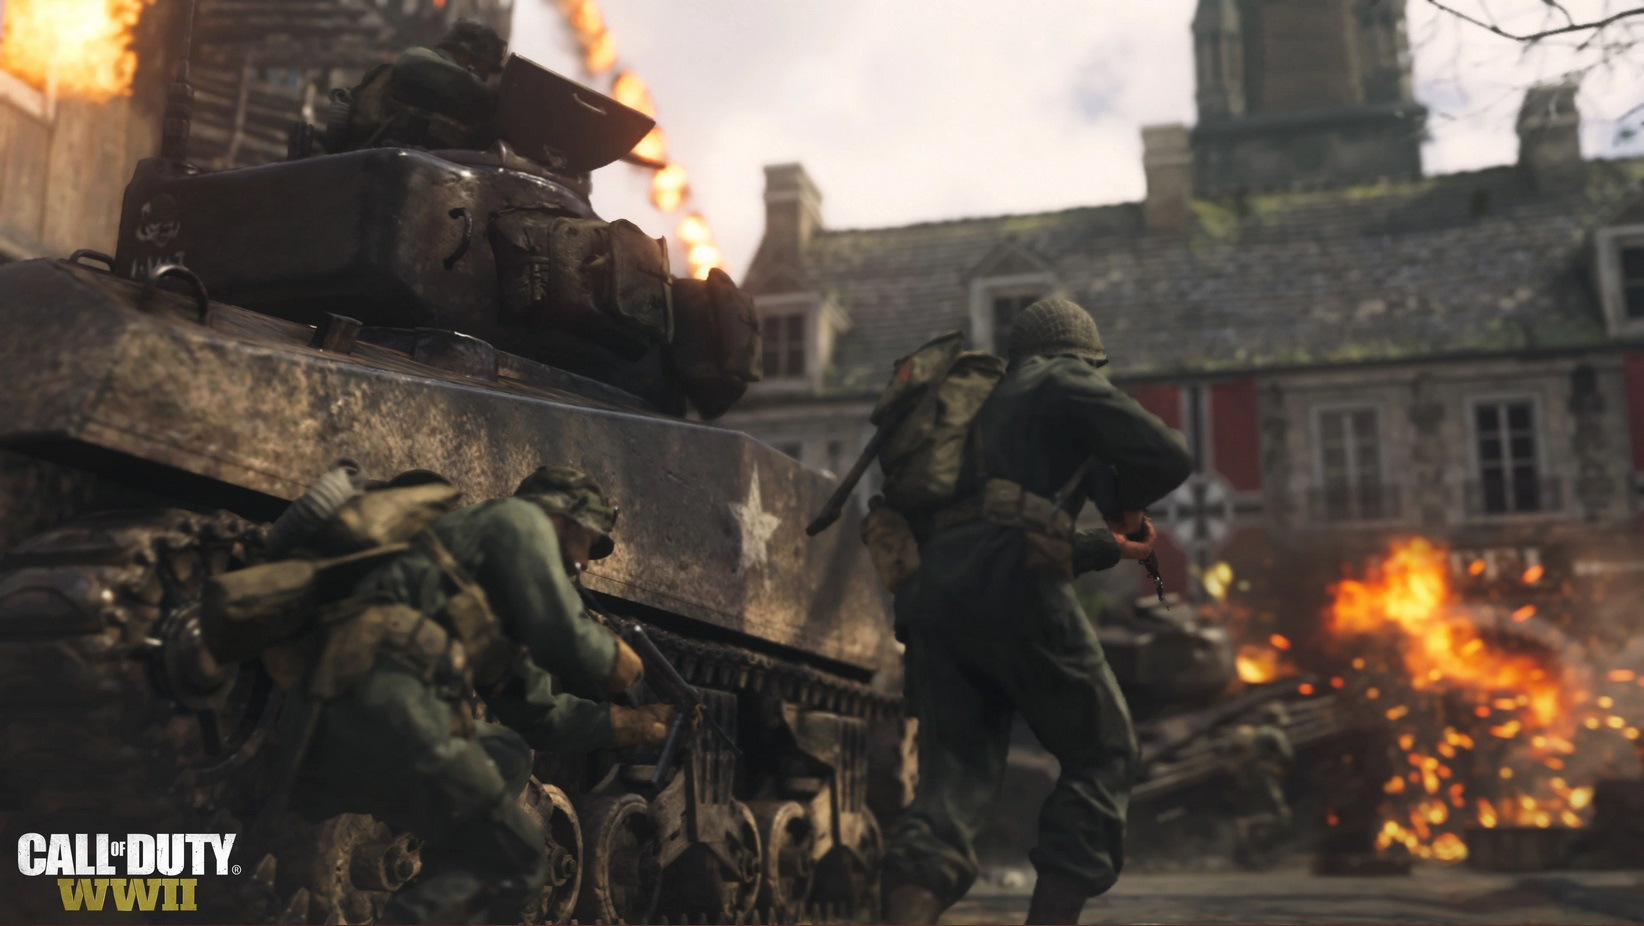 New Call of Duty Game Confirmed for 2020: Here's what we know so far